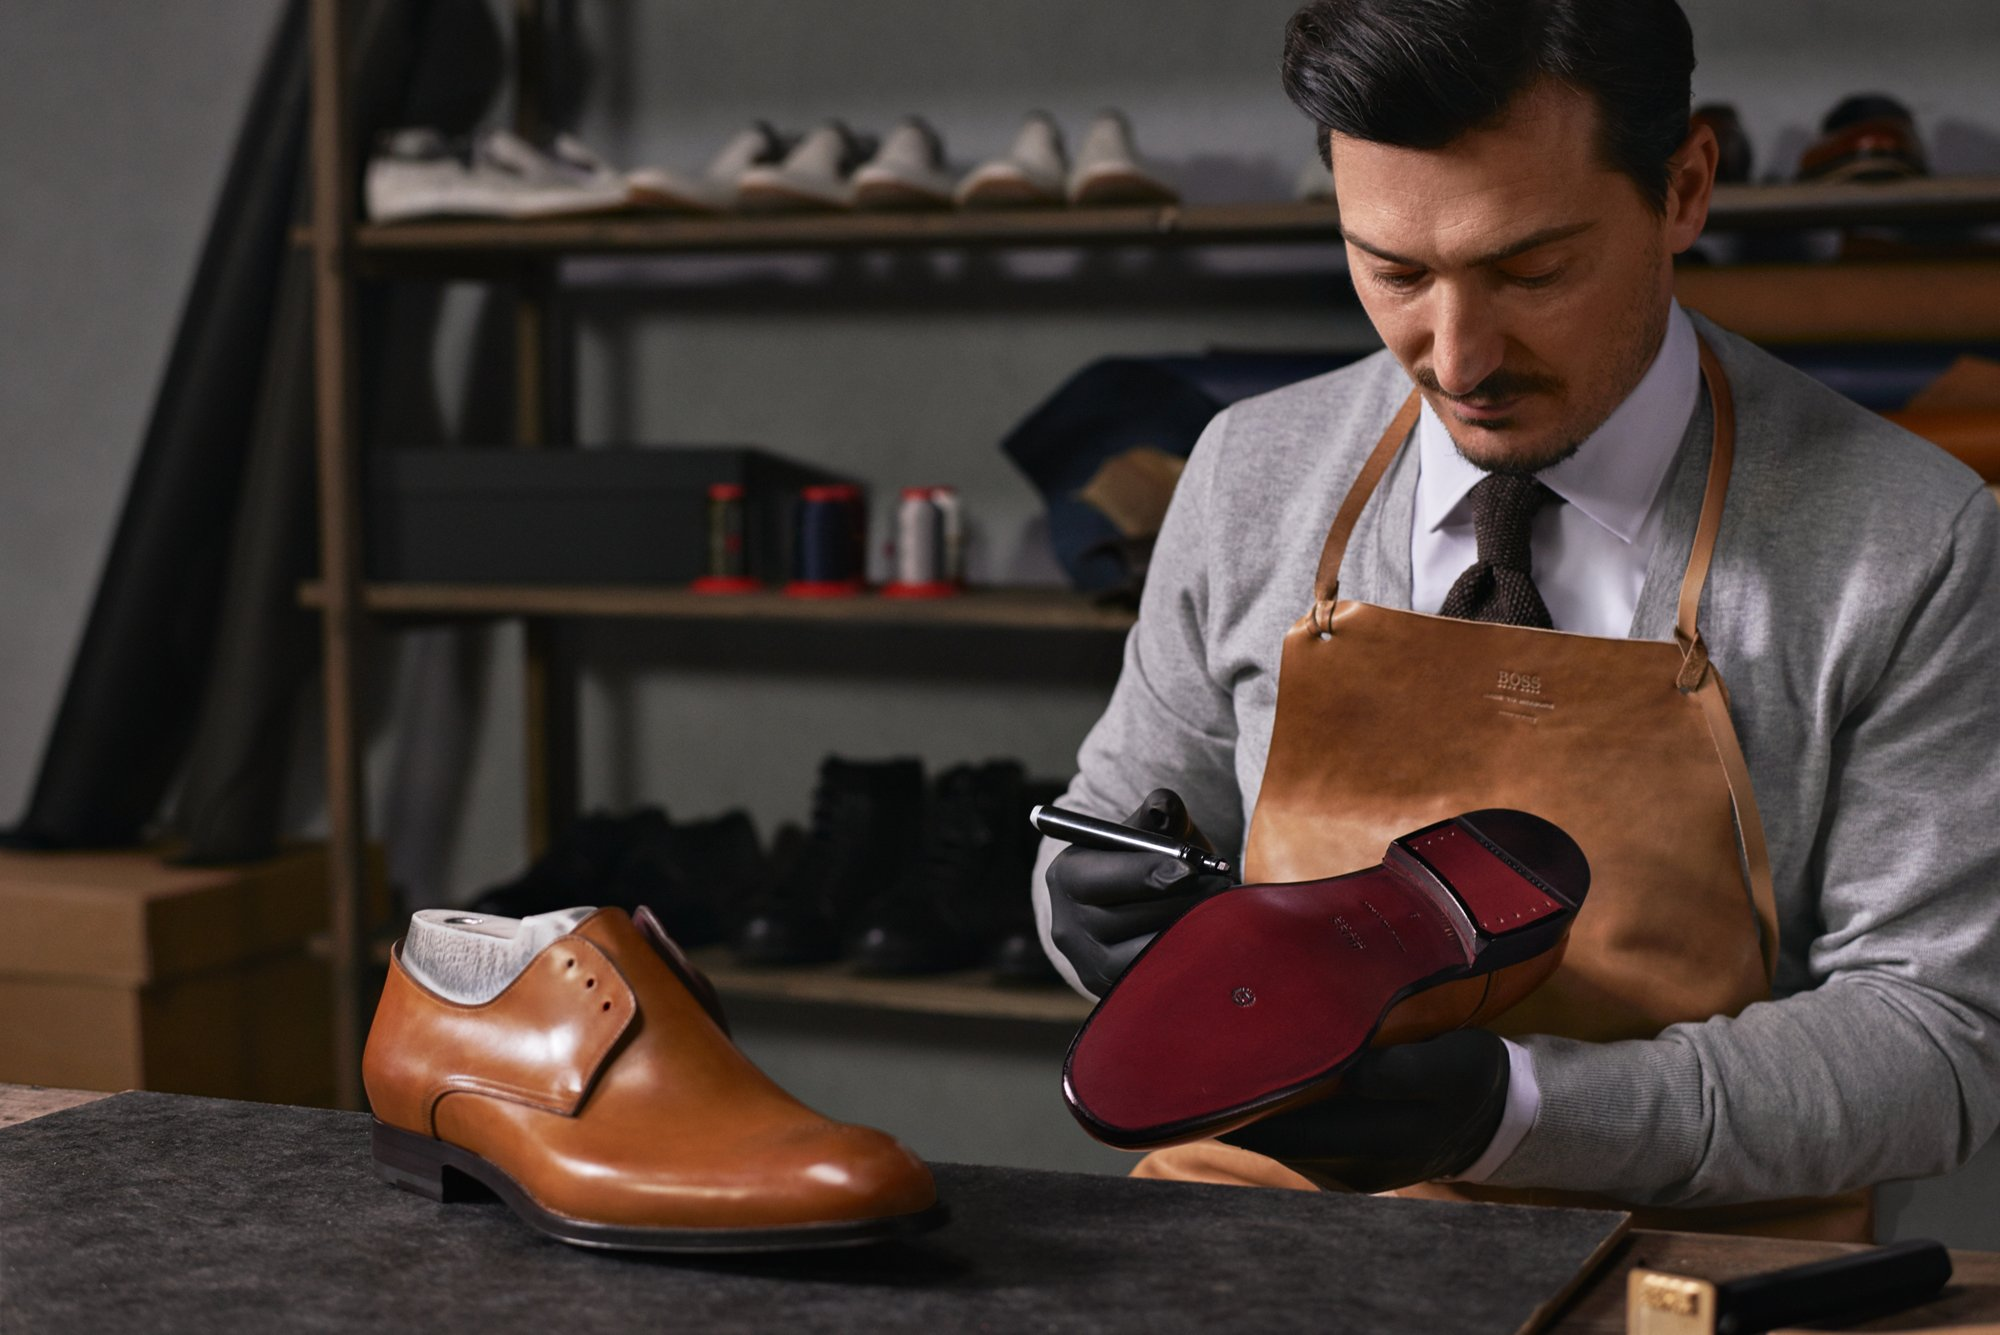 Shoe production by BOSS